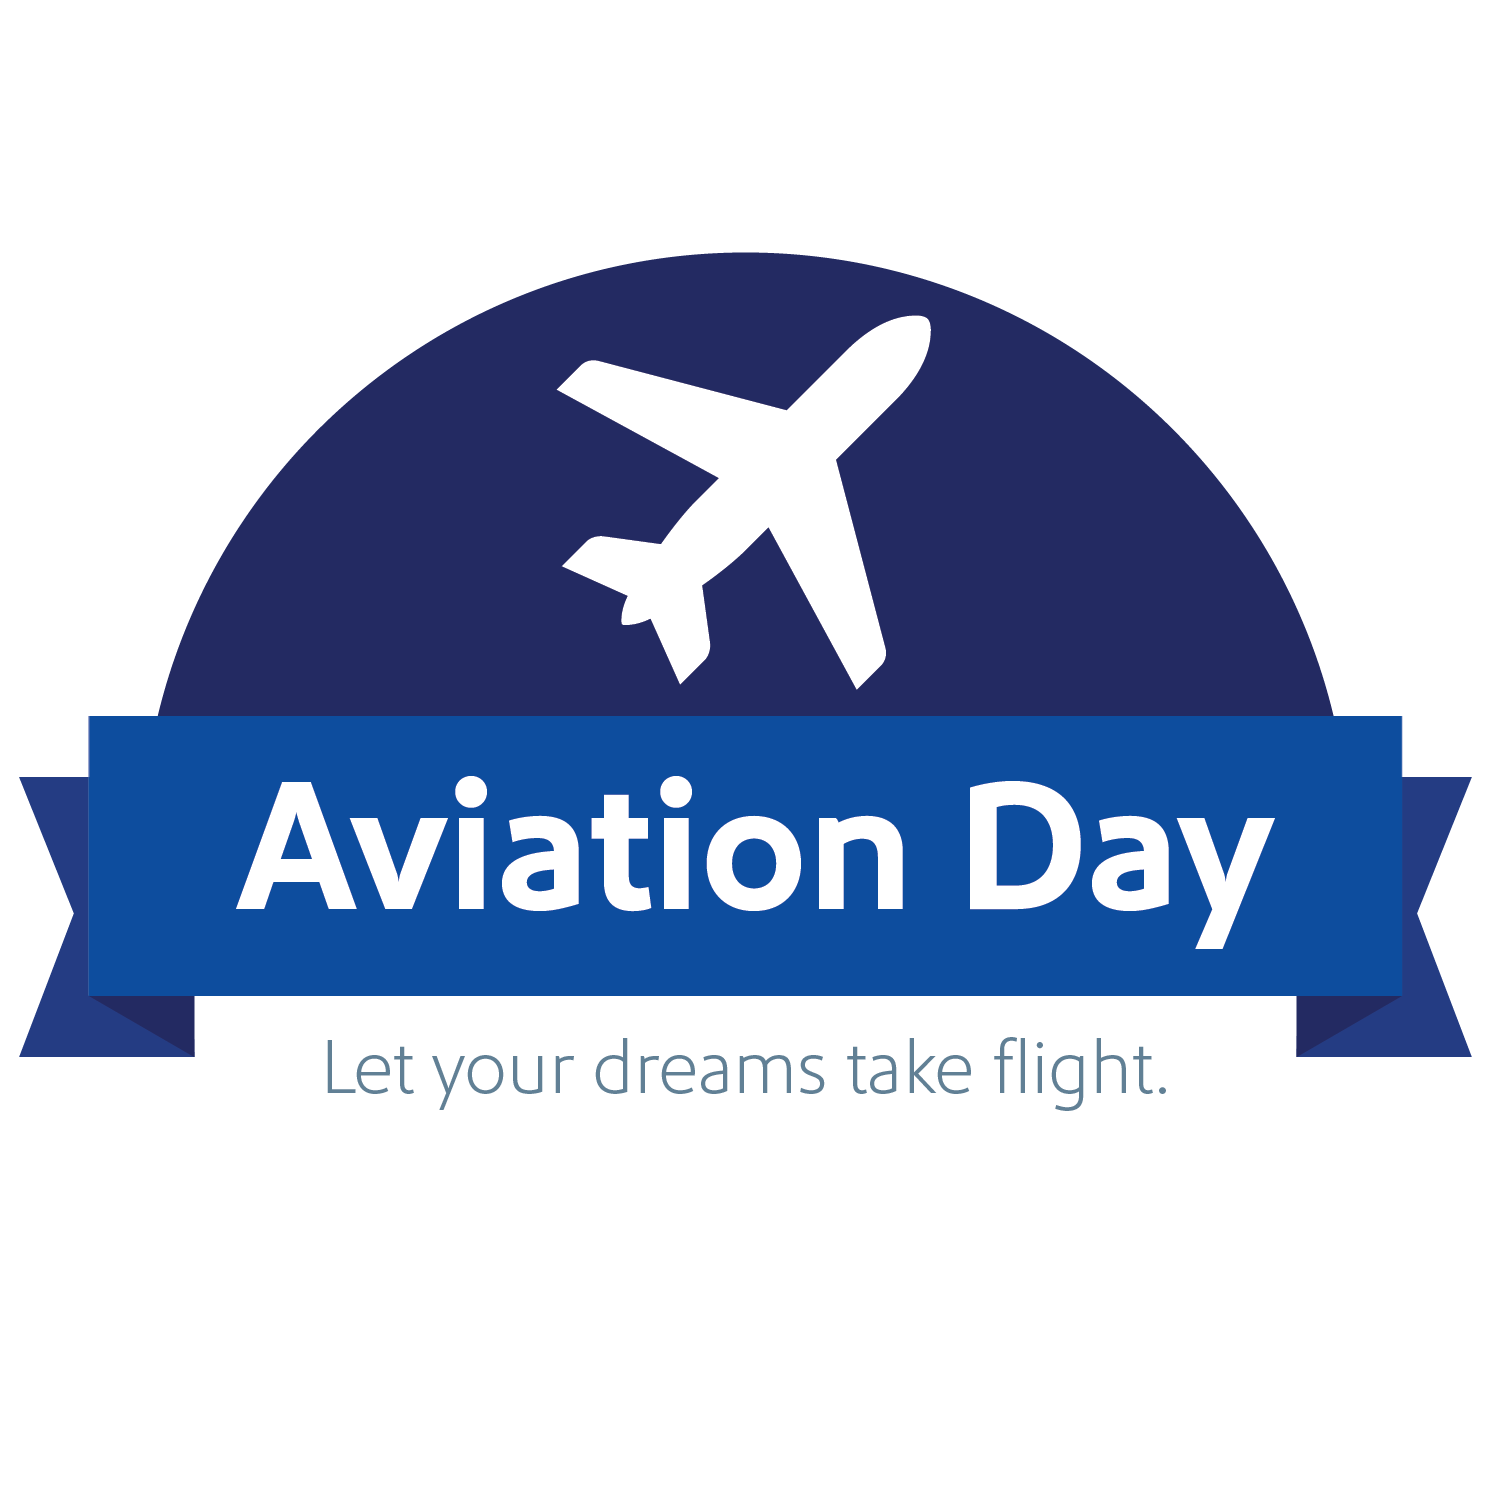 Aviation Day brand mark with tagline 'let your dreams take flight